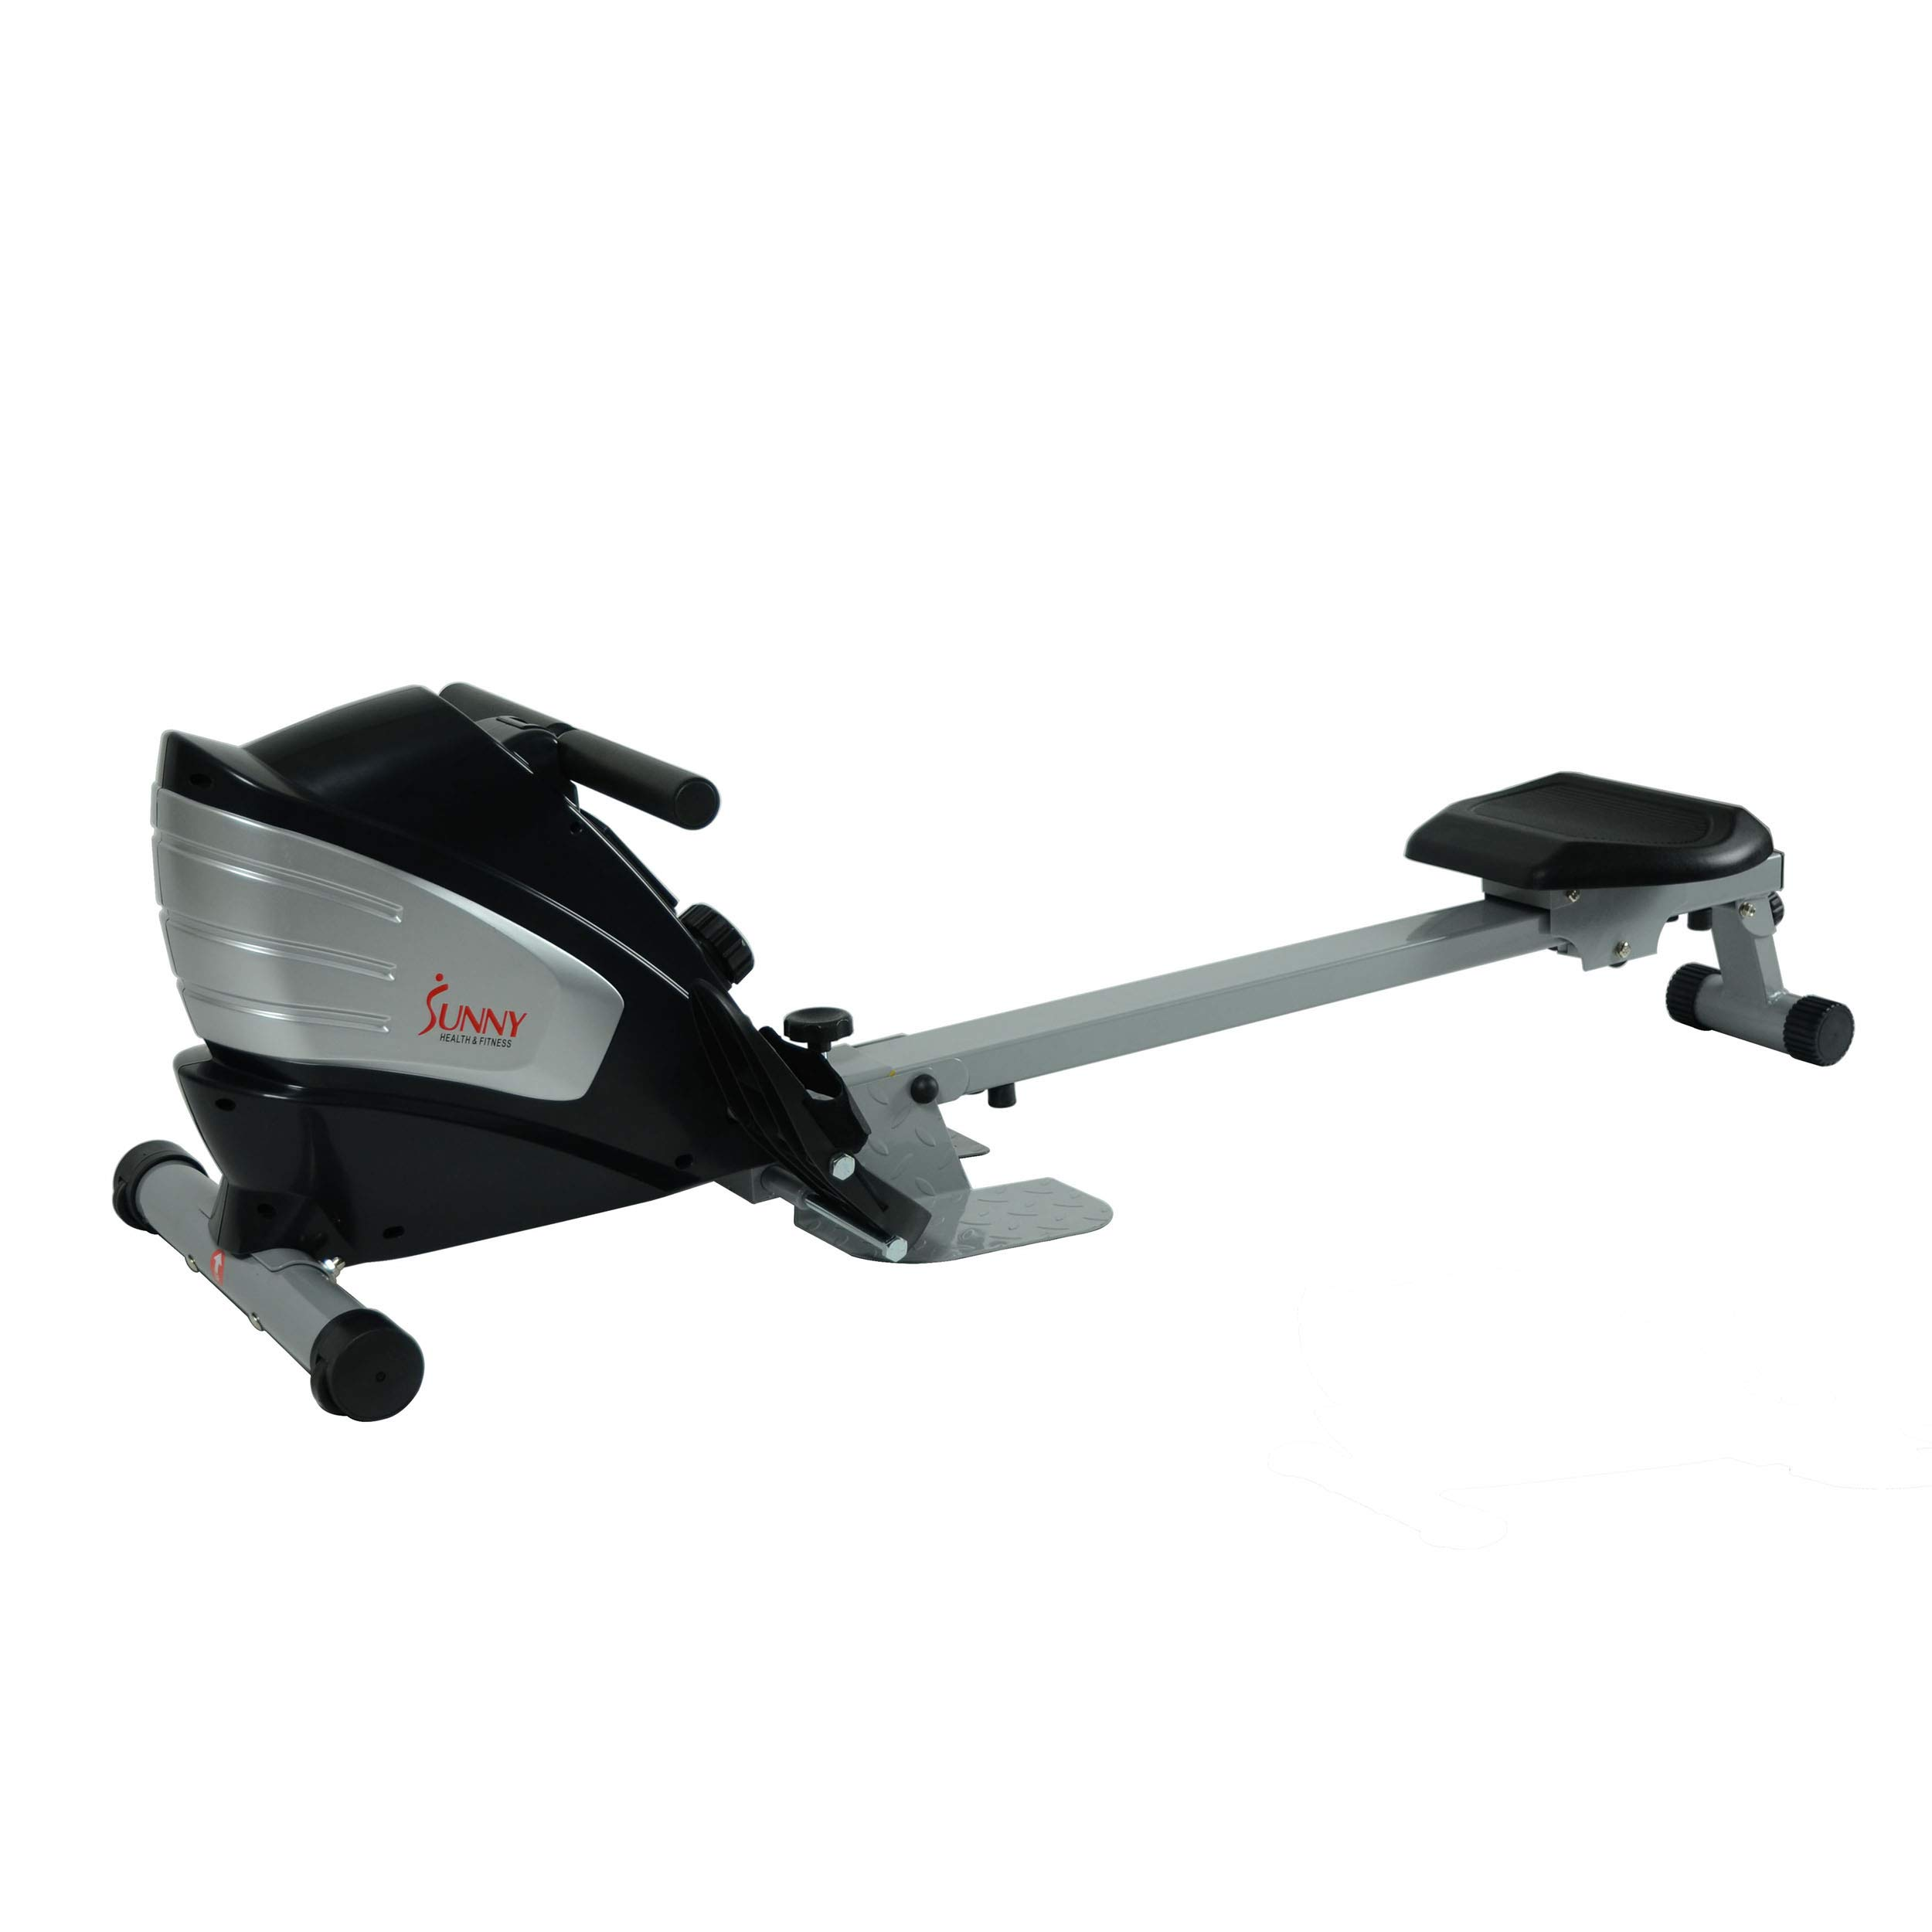 Sunny Health & Fitness Dual Function Magnetic Rowing Machine w/ Digital Monitor, Multi-Exercise Step Plates and Foldable -  SF-RW5622 by Sunny Health & Fitness (Image #4)